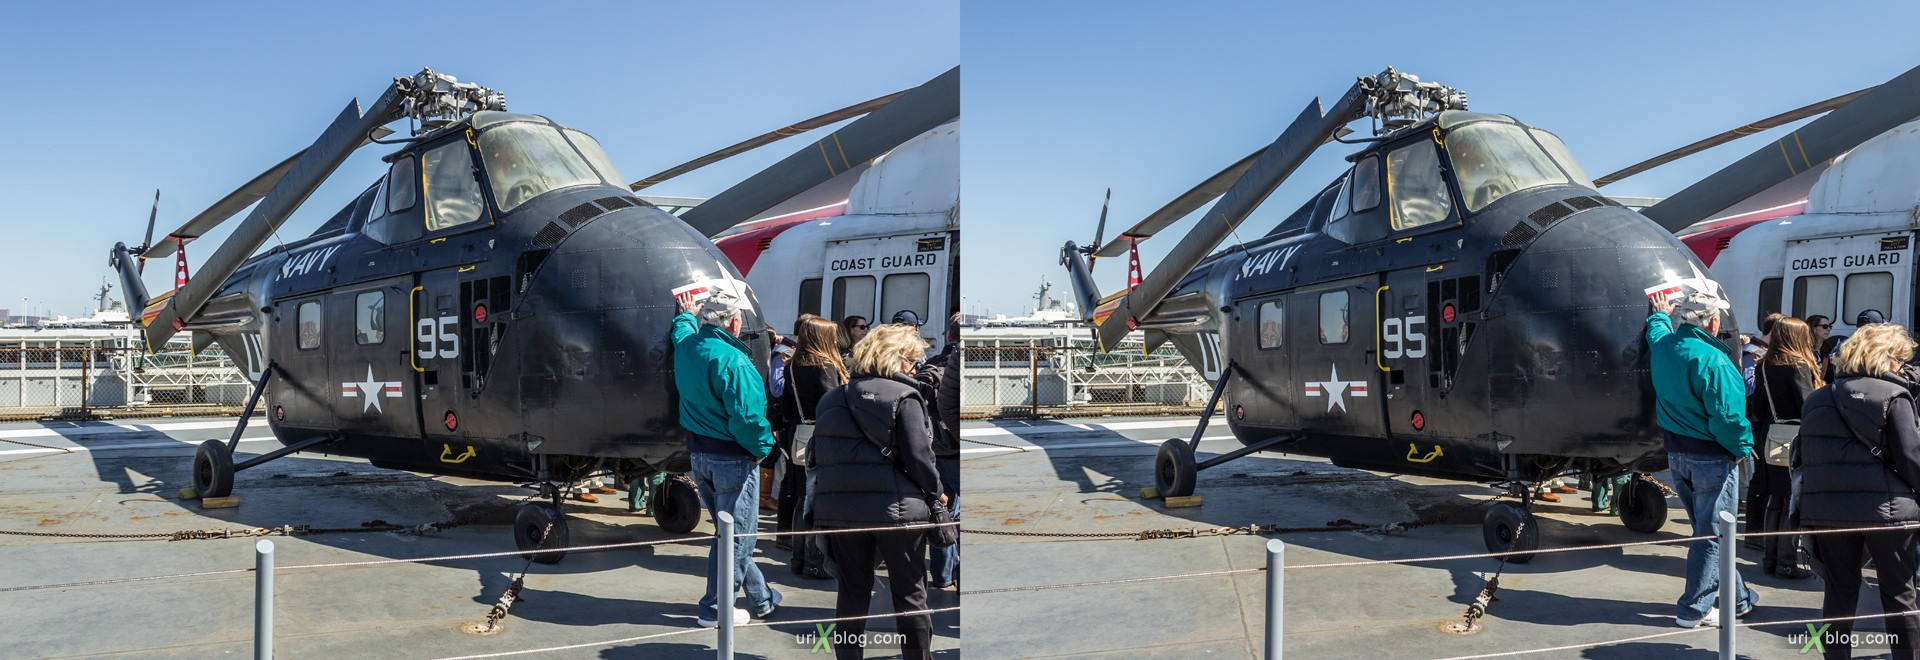 2013, USA, NYC, New York, aircraft carrier Intrepid museum, Sikorsky HRS helicopter, HRS, sea, air, space, ship, submarine, aircraft, airplane, military, 3D, stereo pair, cross-eyed, crossview, cross view stereo pair, stereoscopic